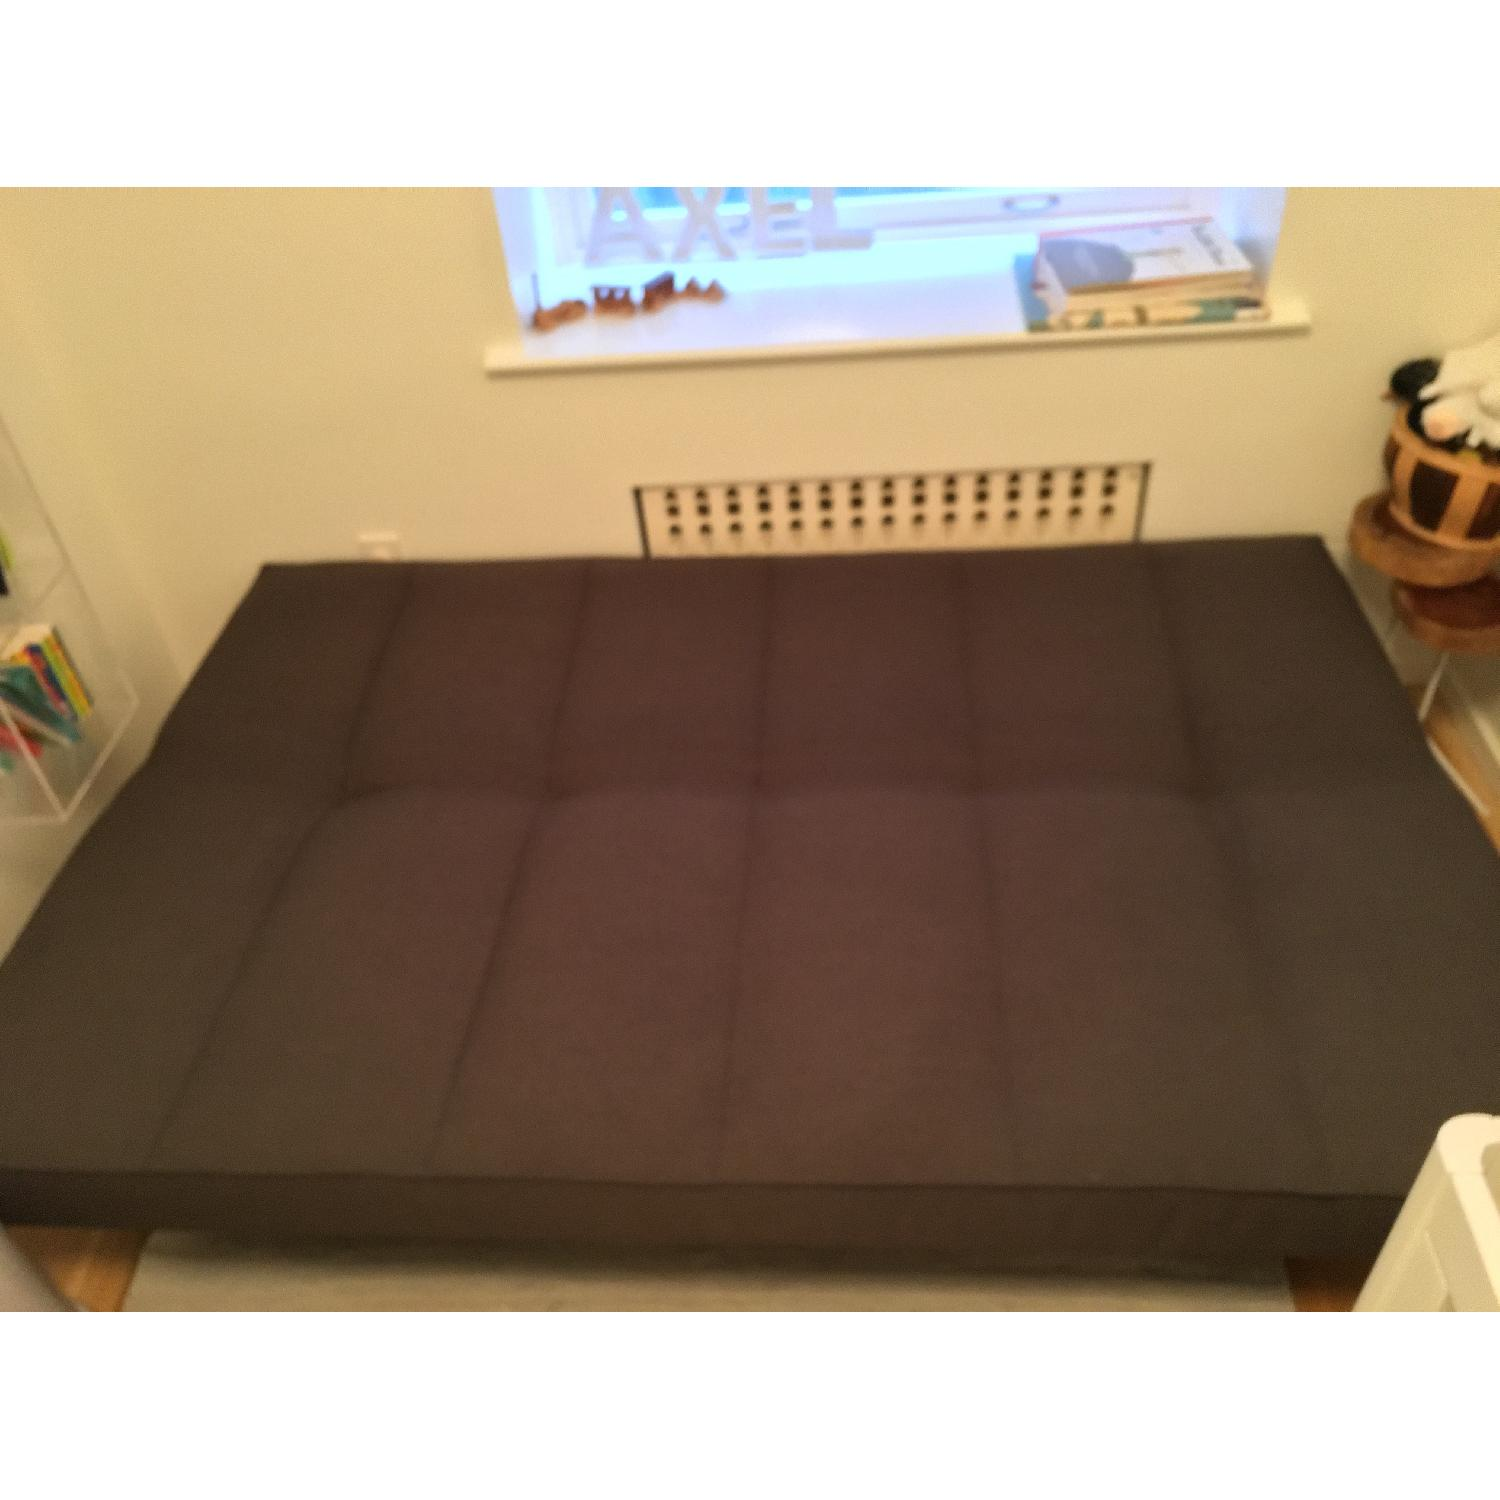 CB2 Flex Gravel Sleeper Sofa - image-1